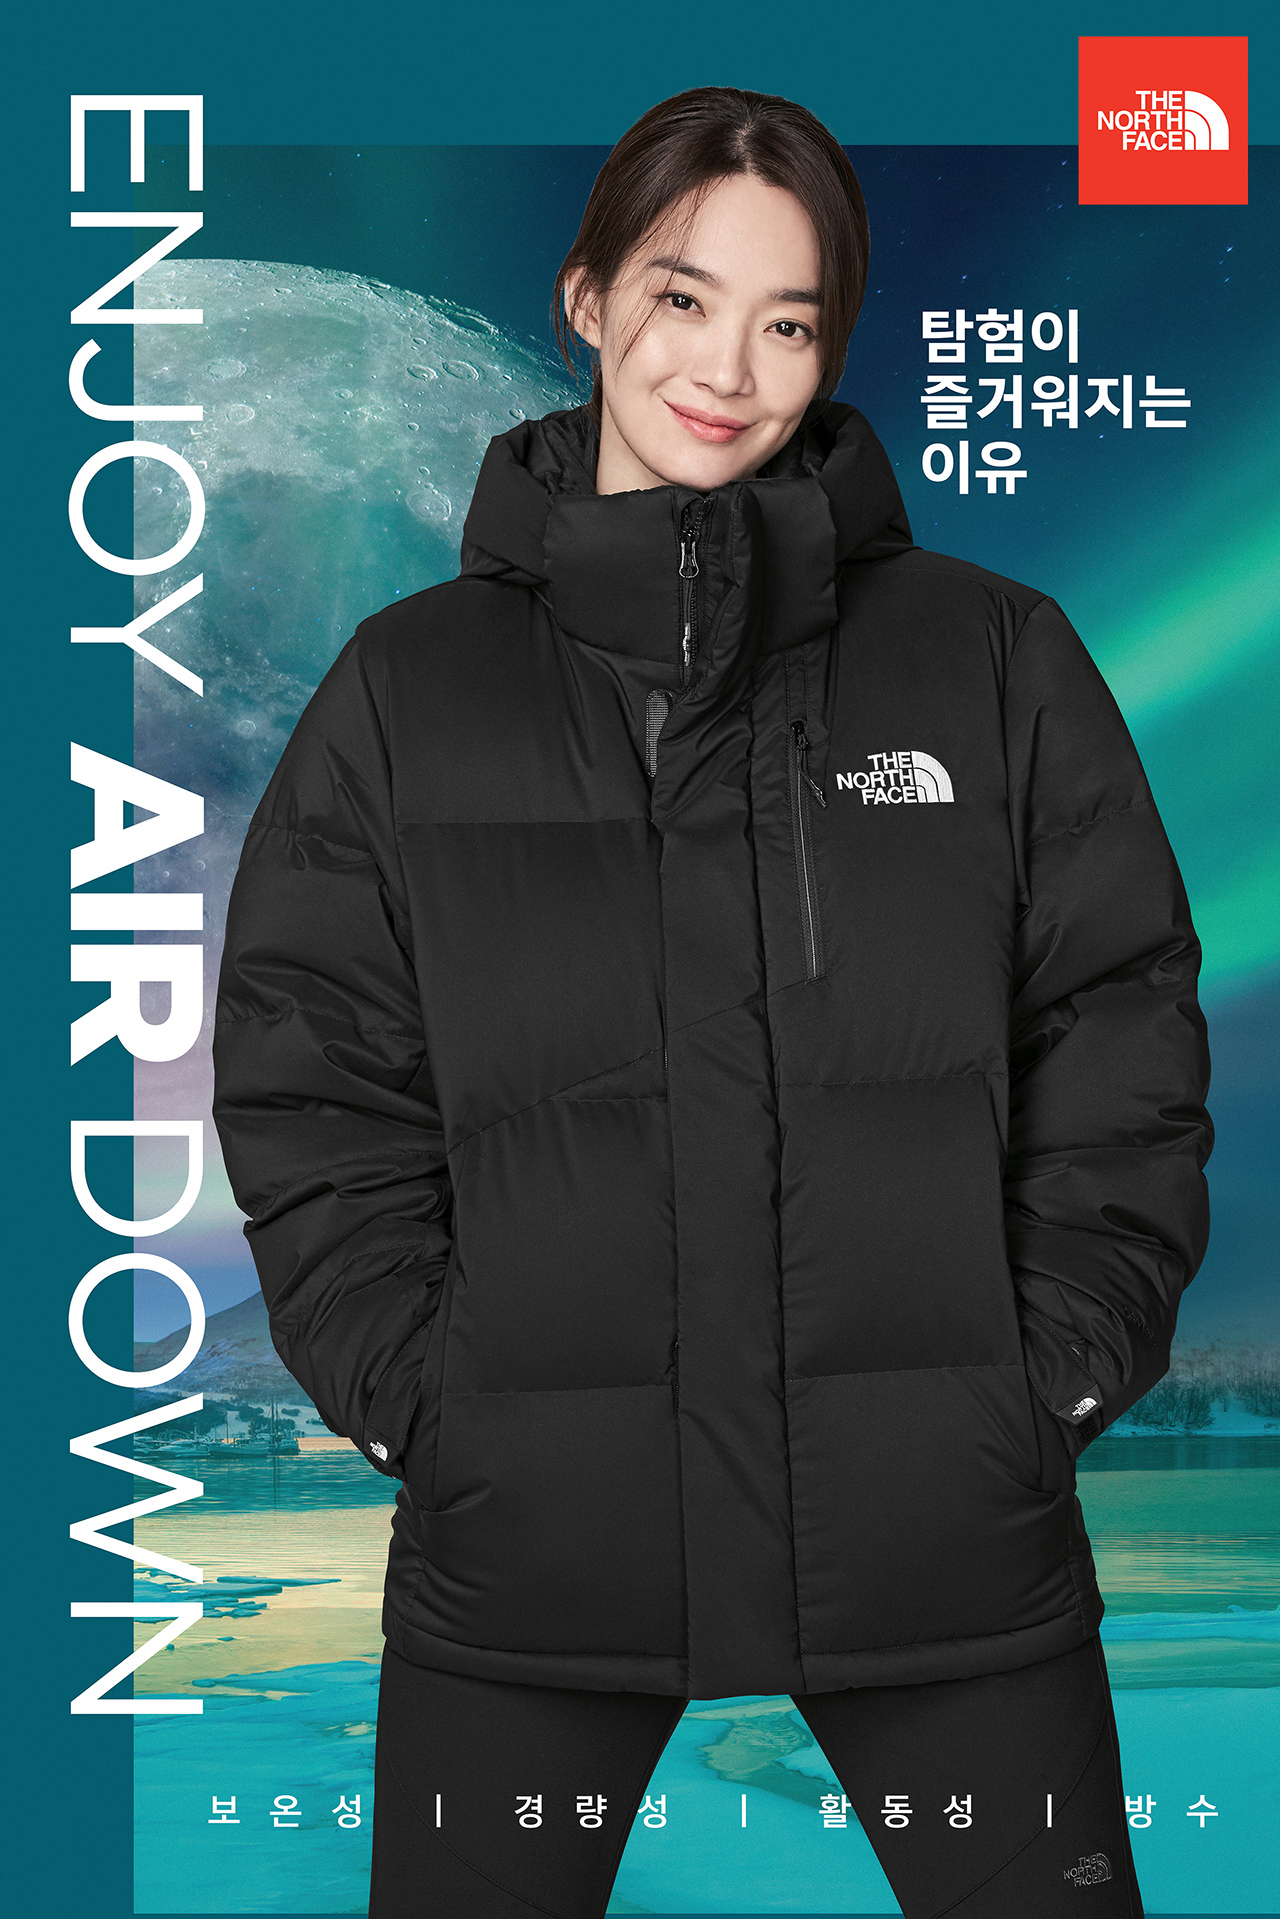 TNF_FW2019_EAD_VMD1200x1800mm_vertical.jpg